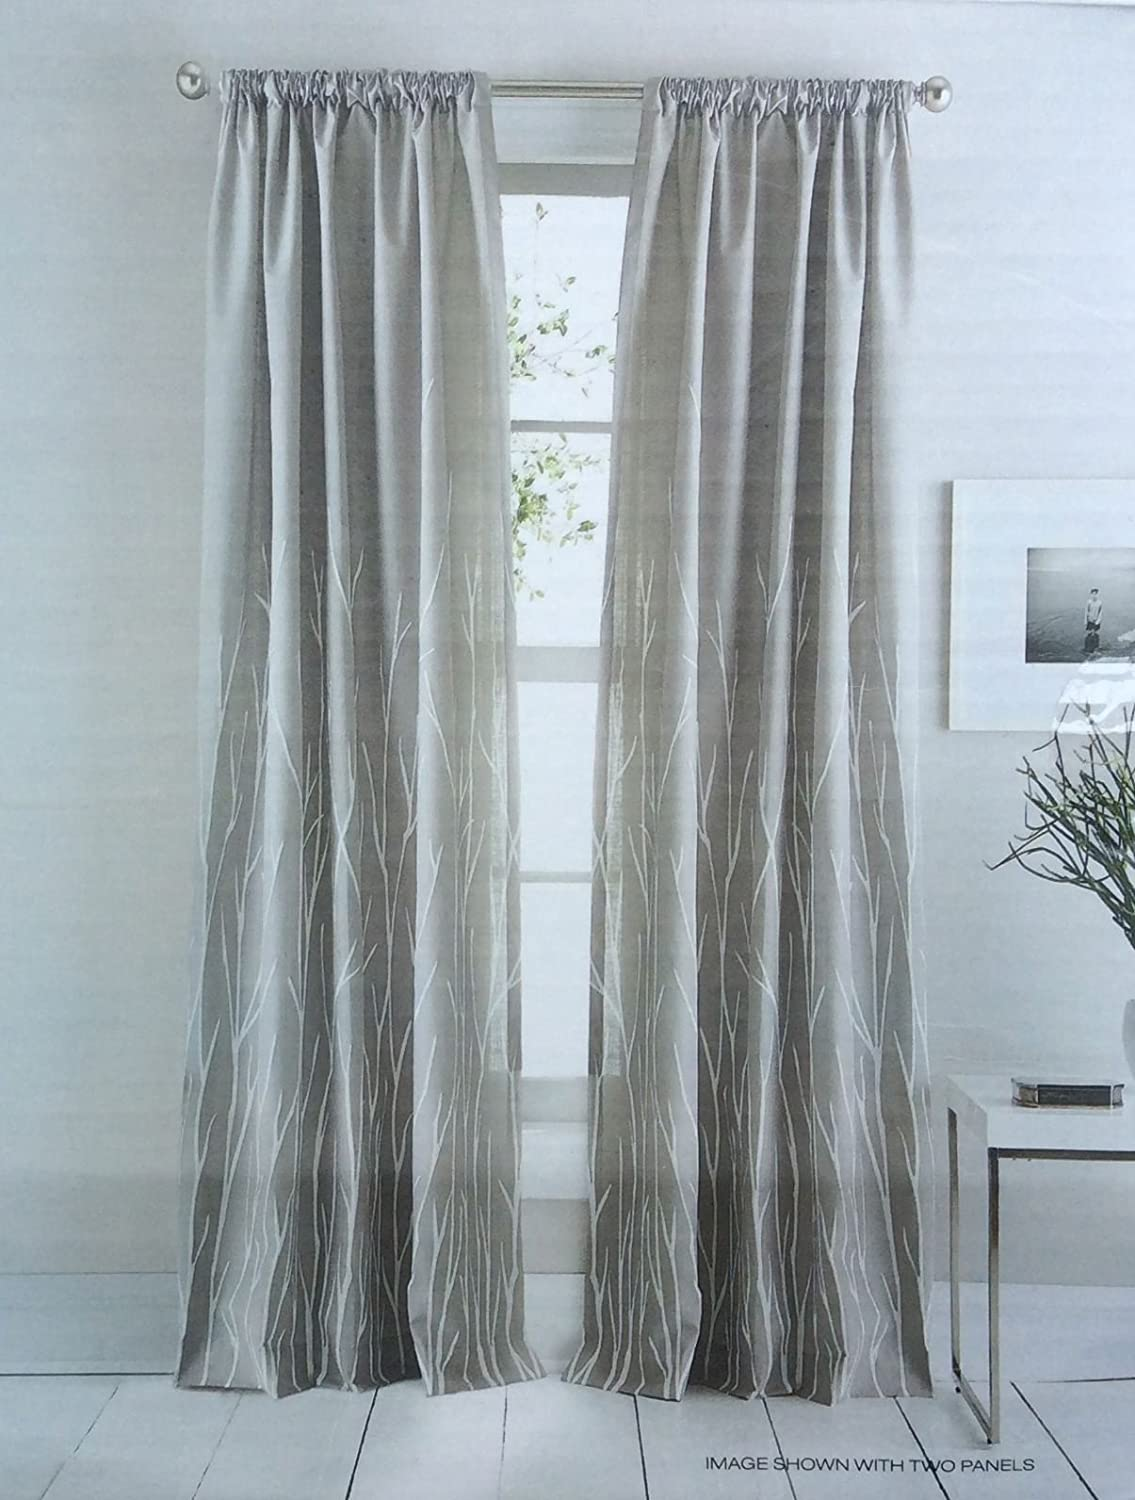 wood vertical inch design vinyl blind plantation bamboo shutters ideas windows curtain online for cornice large blinds custom window decoration and outstanding curtains